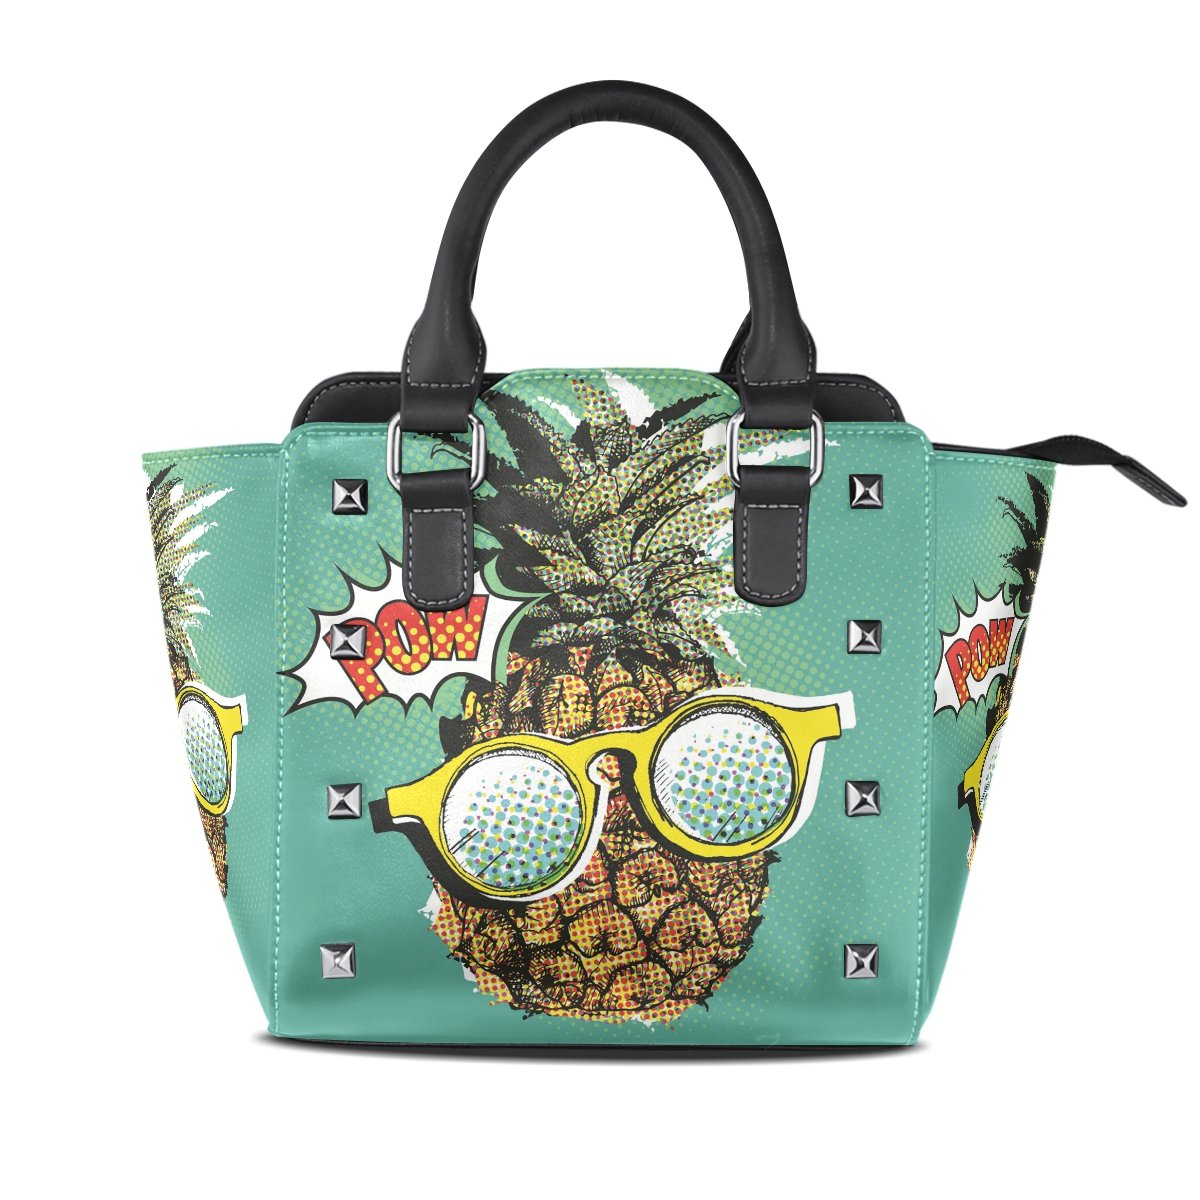 Ladies Genuine Leather Tote Bags Cool Pineapple Womens Hangbags Shoulder Bags